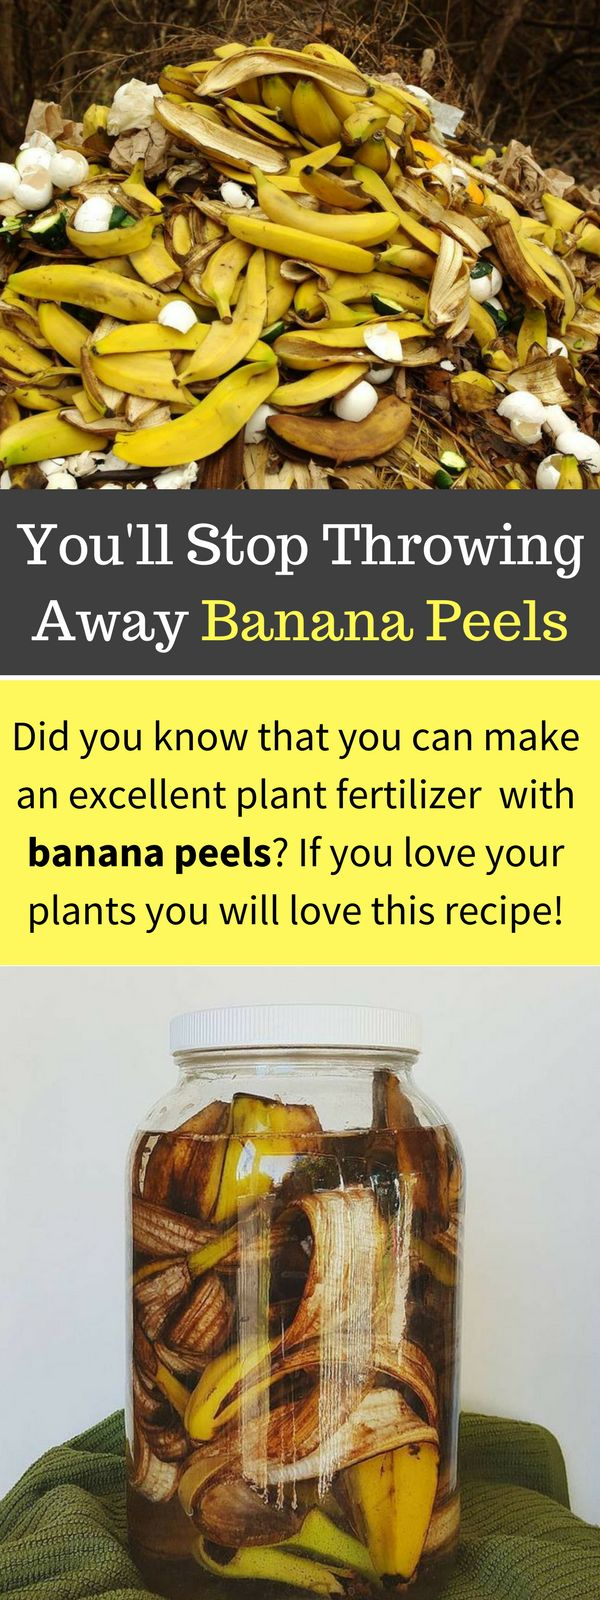 Using Banana Peels in the Garden for Fertilizer and Pests